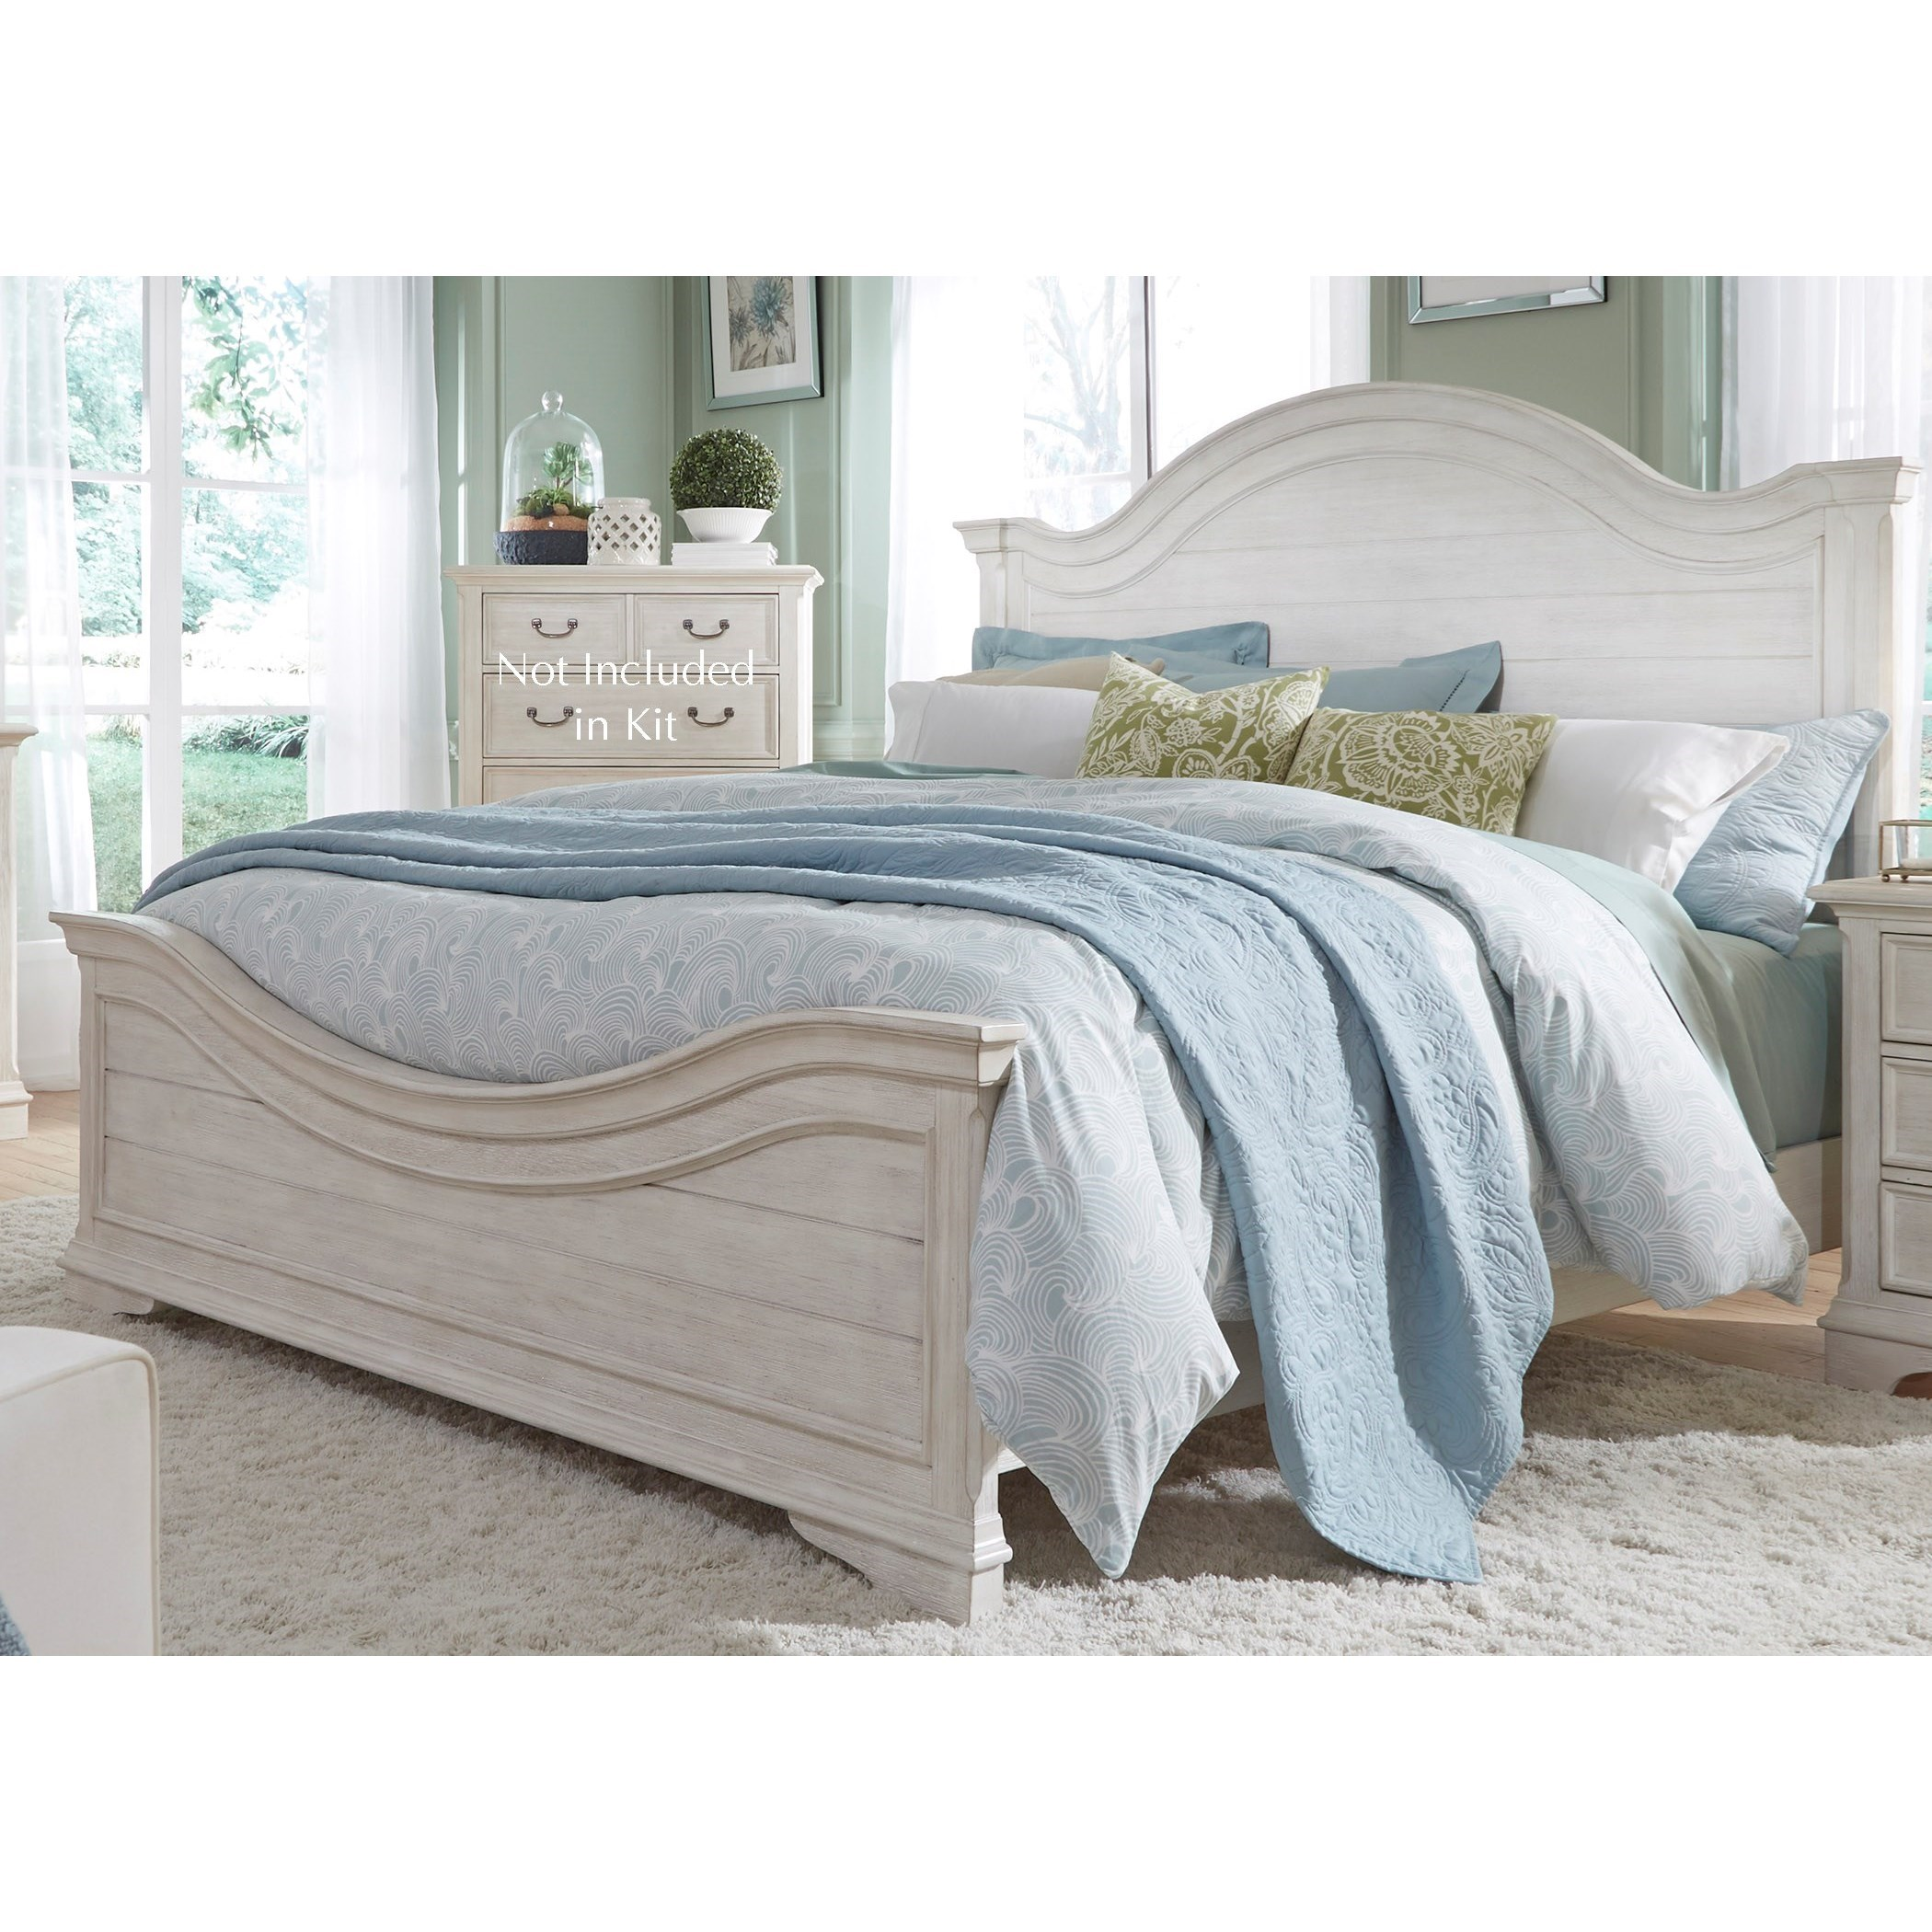 Bayside Bedroom Queen Panel Bed  by Libby at Walker's Furniture